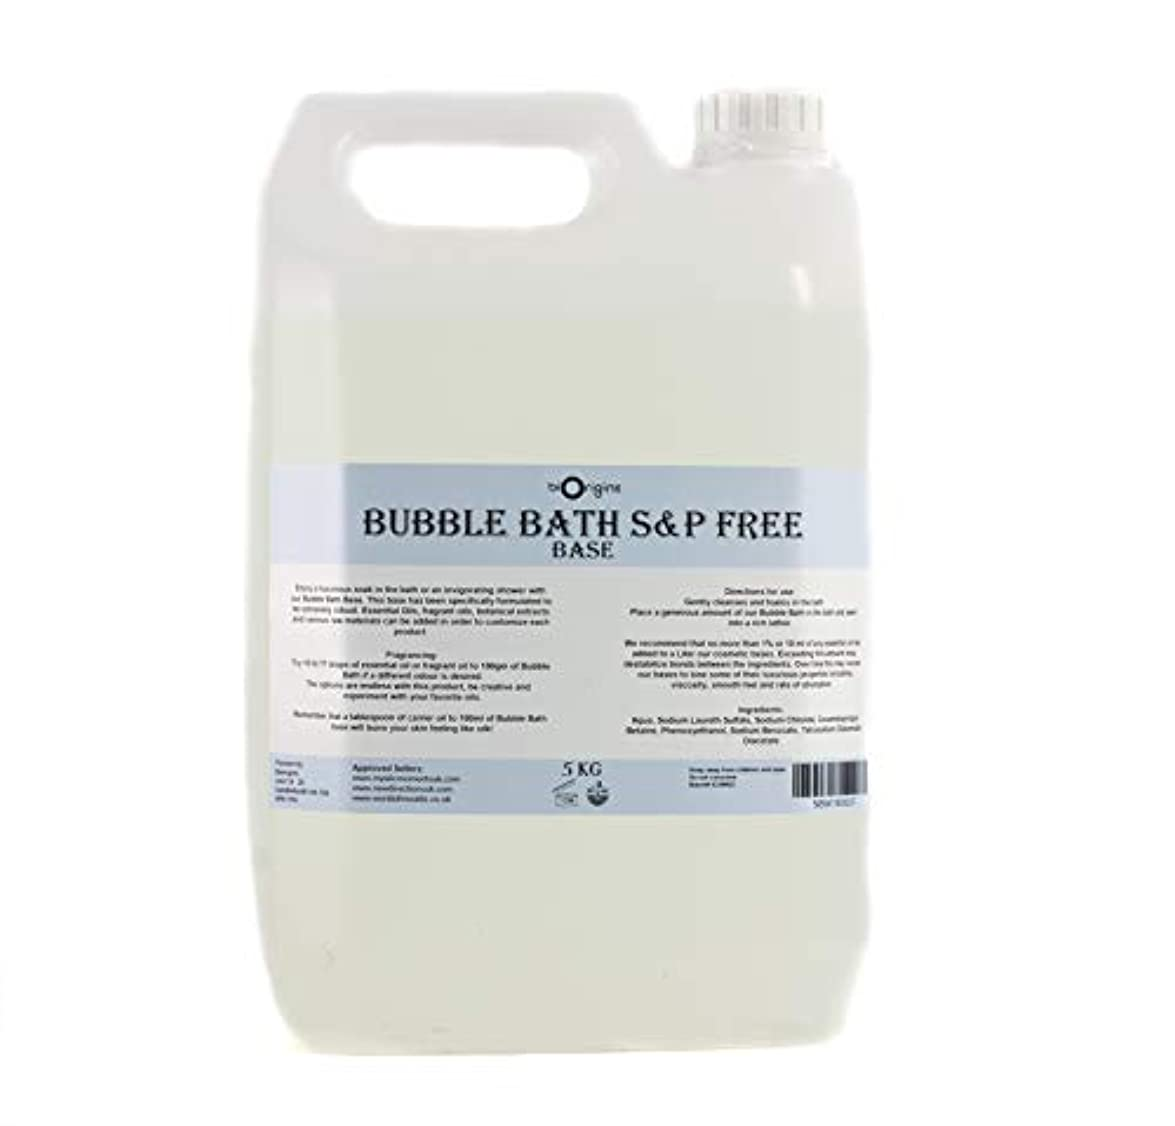 歯科医緩む観客Bubble Bath Base - SLS & Paraben Free - 5Kg